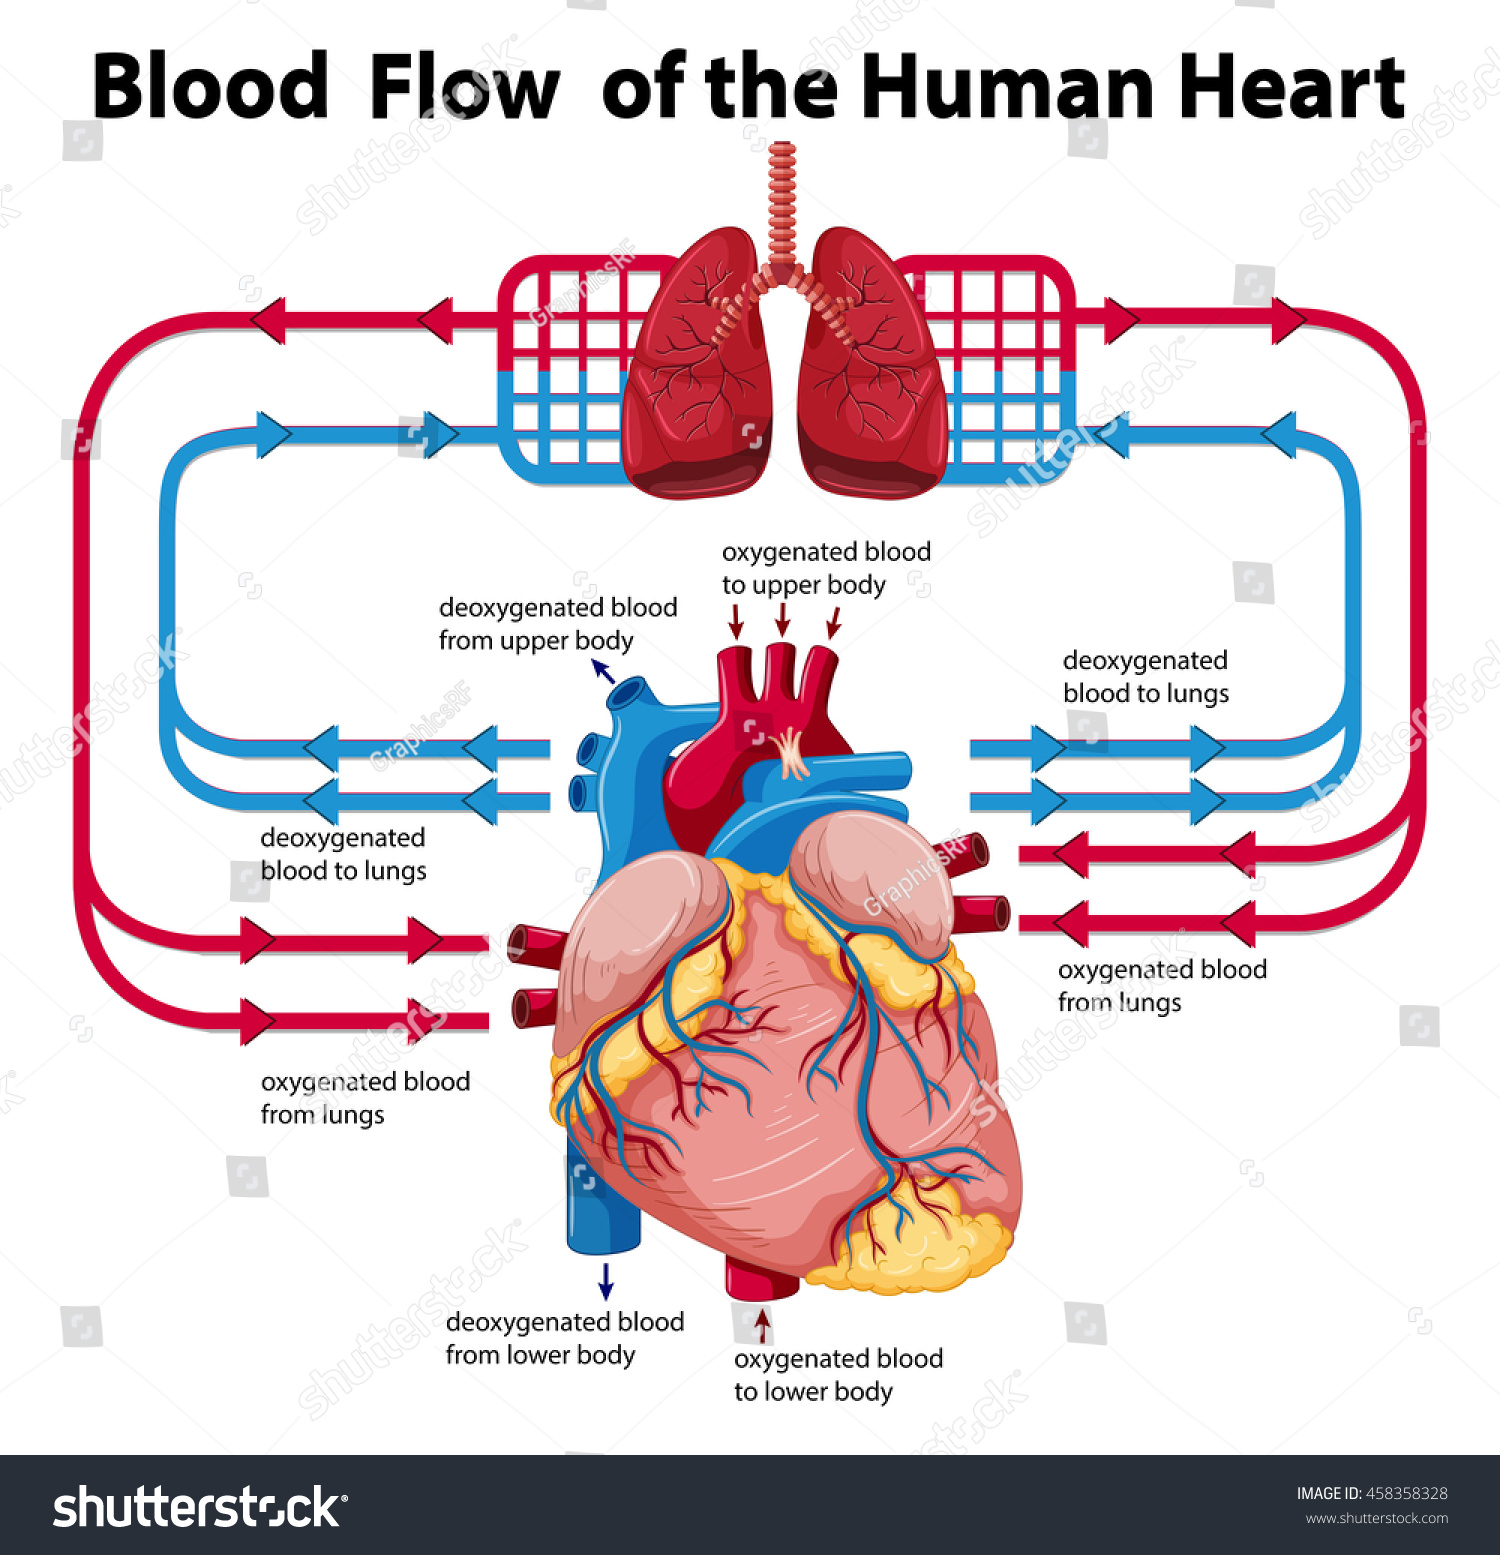 diagram showing blood flow of human heart illustration #458358328, Muscles